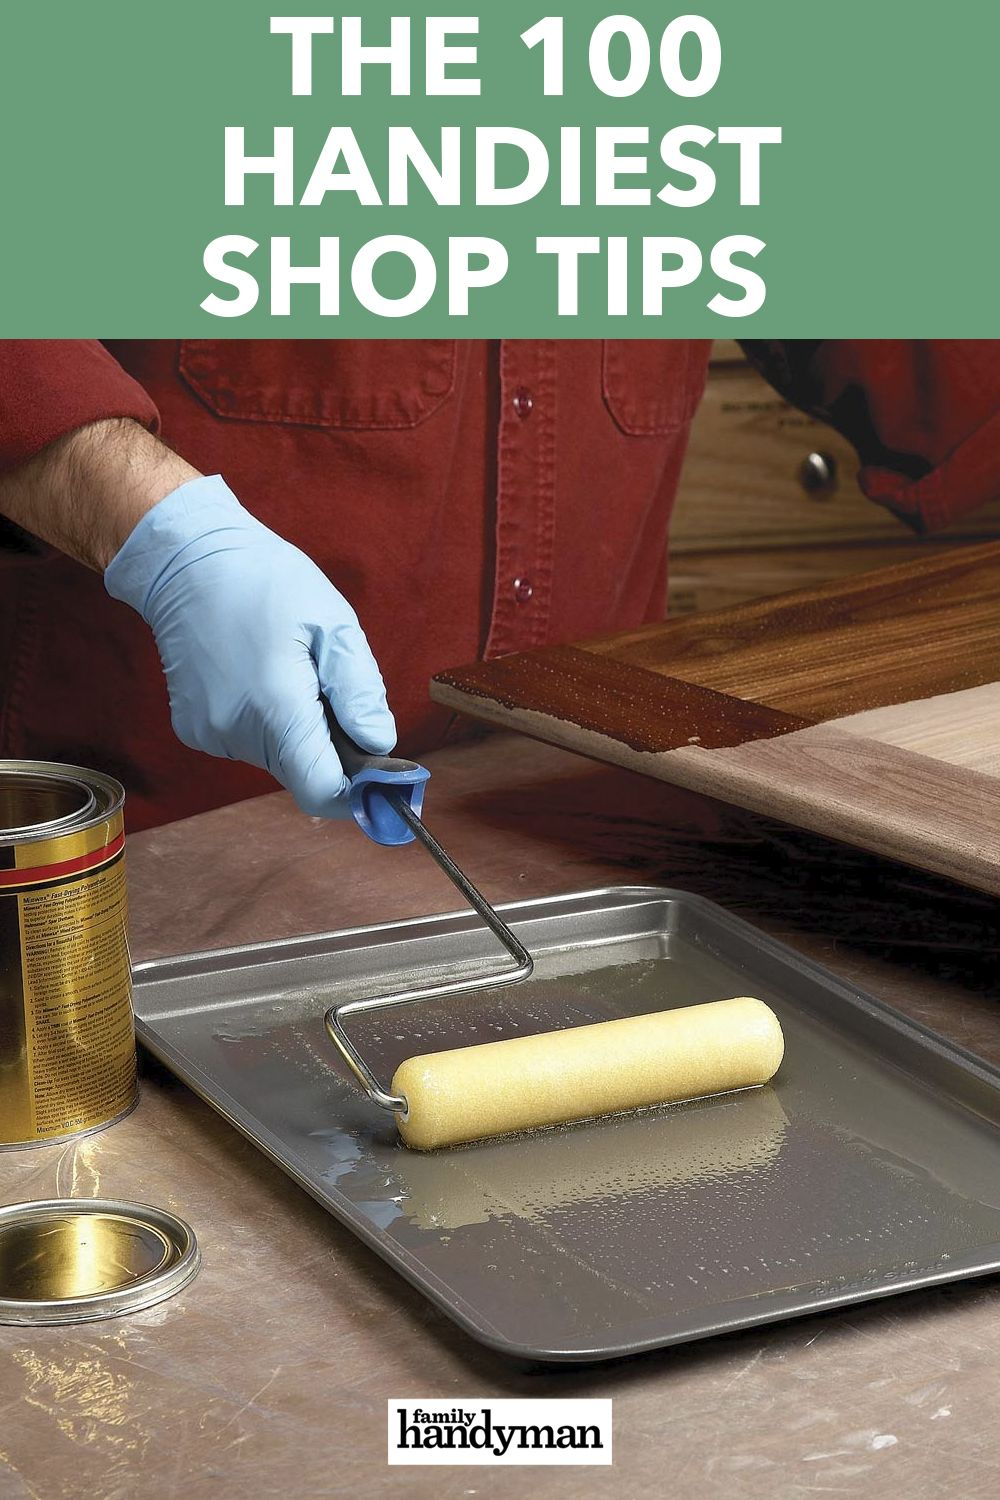 The 100 Handiest Shop Tips Woodworking tips, Tips, Shopping